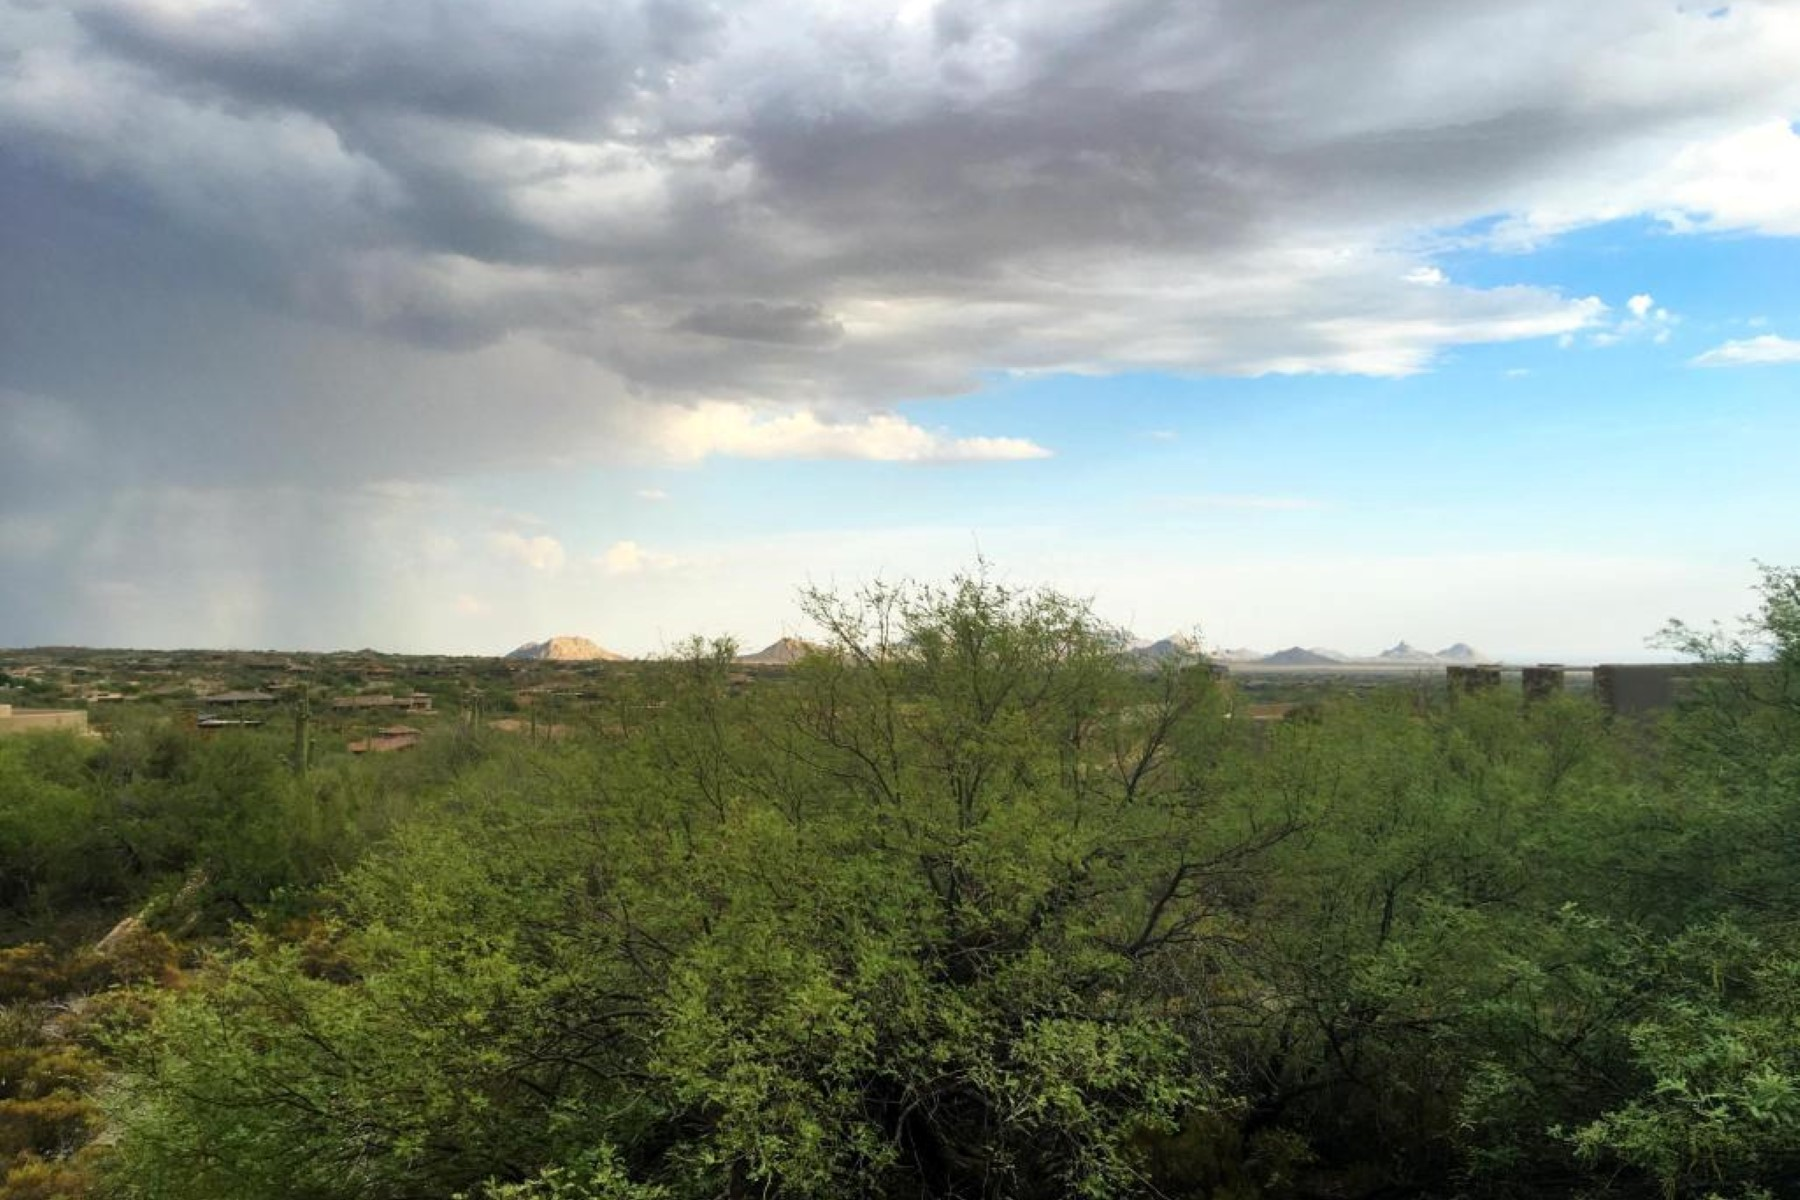 Land for Sale at Non-membership homesite Located in Saguaro Forest 42061 N 103rd Way #21 Scottsdale, Arizona, 85262 United States